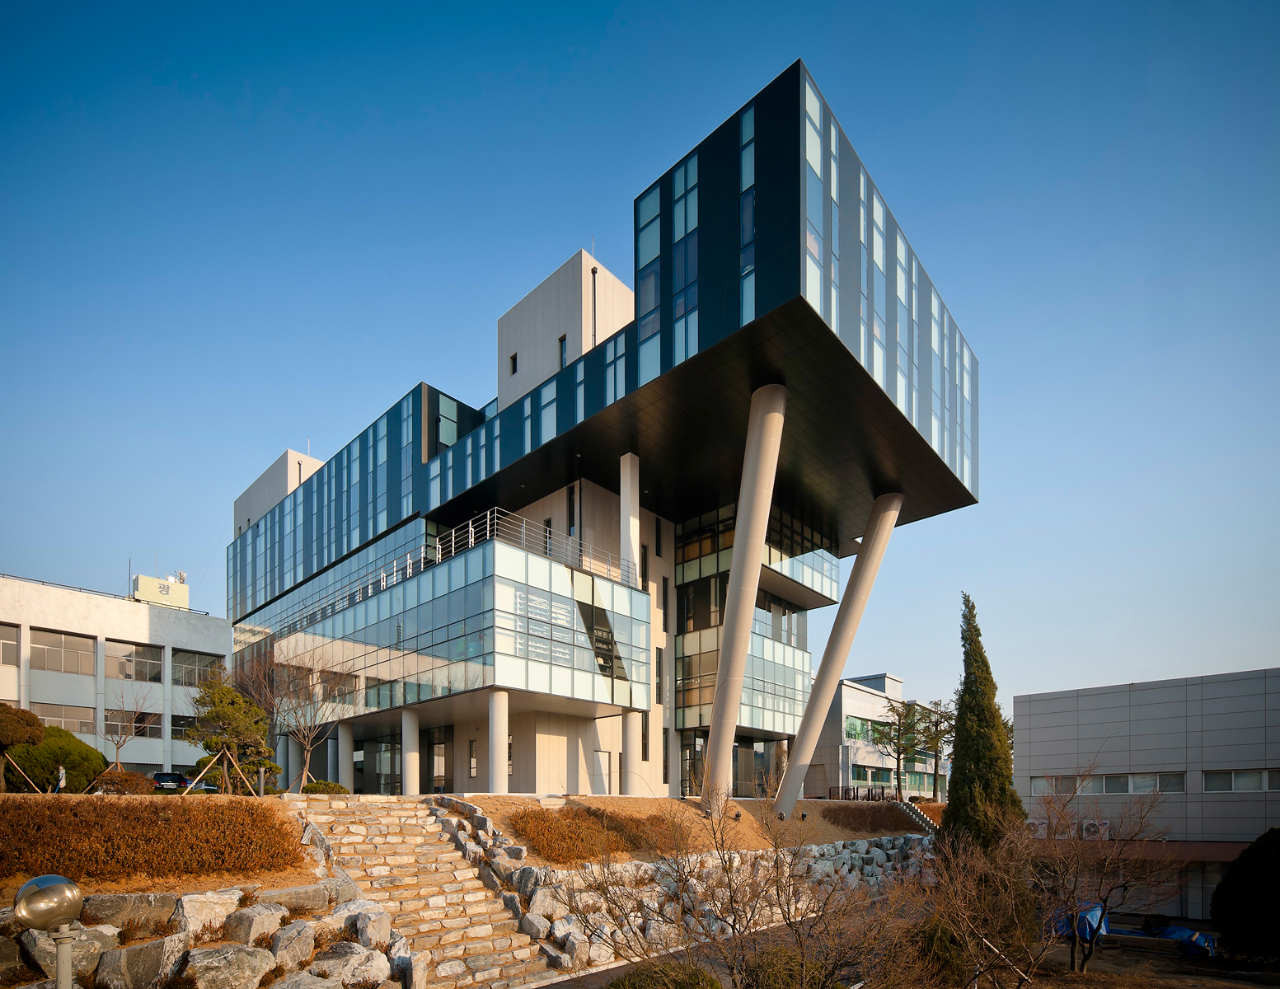 Engineering college korea polytechnic vi baum architects for City polytechnic high school of engineering architecture and technology